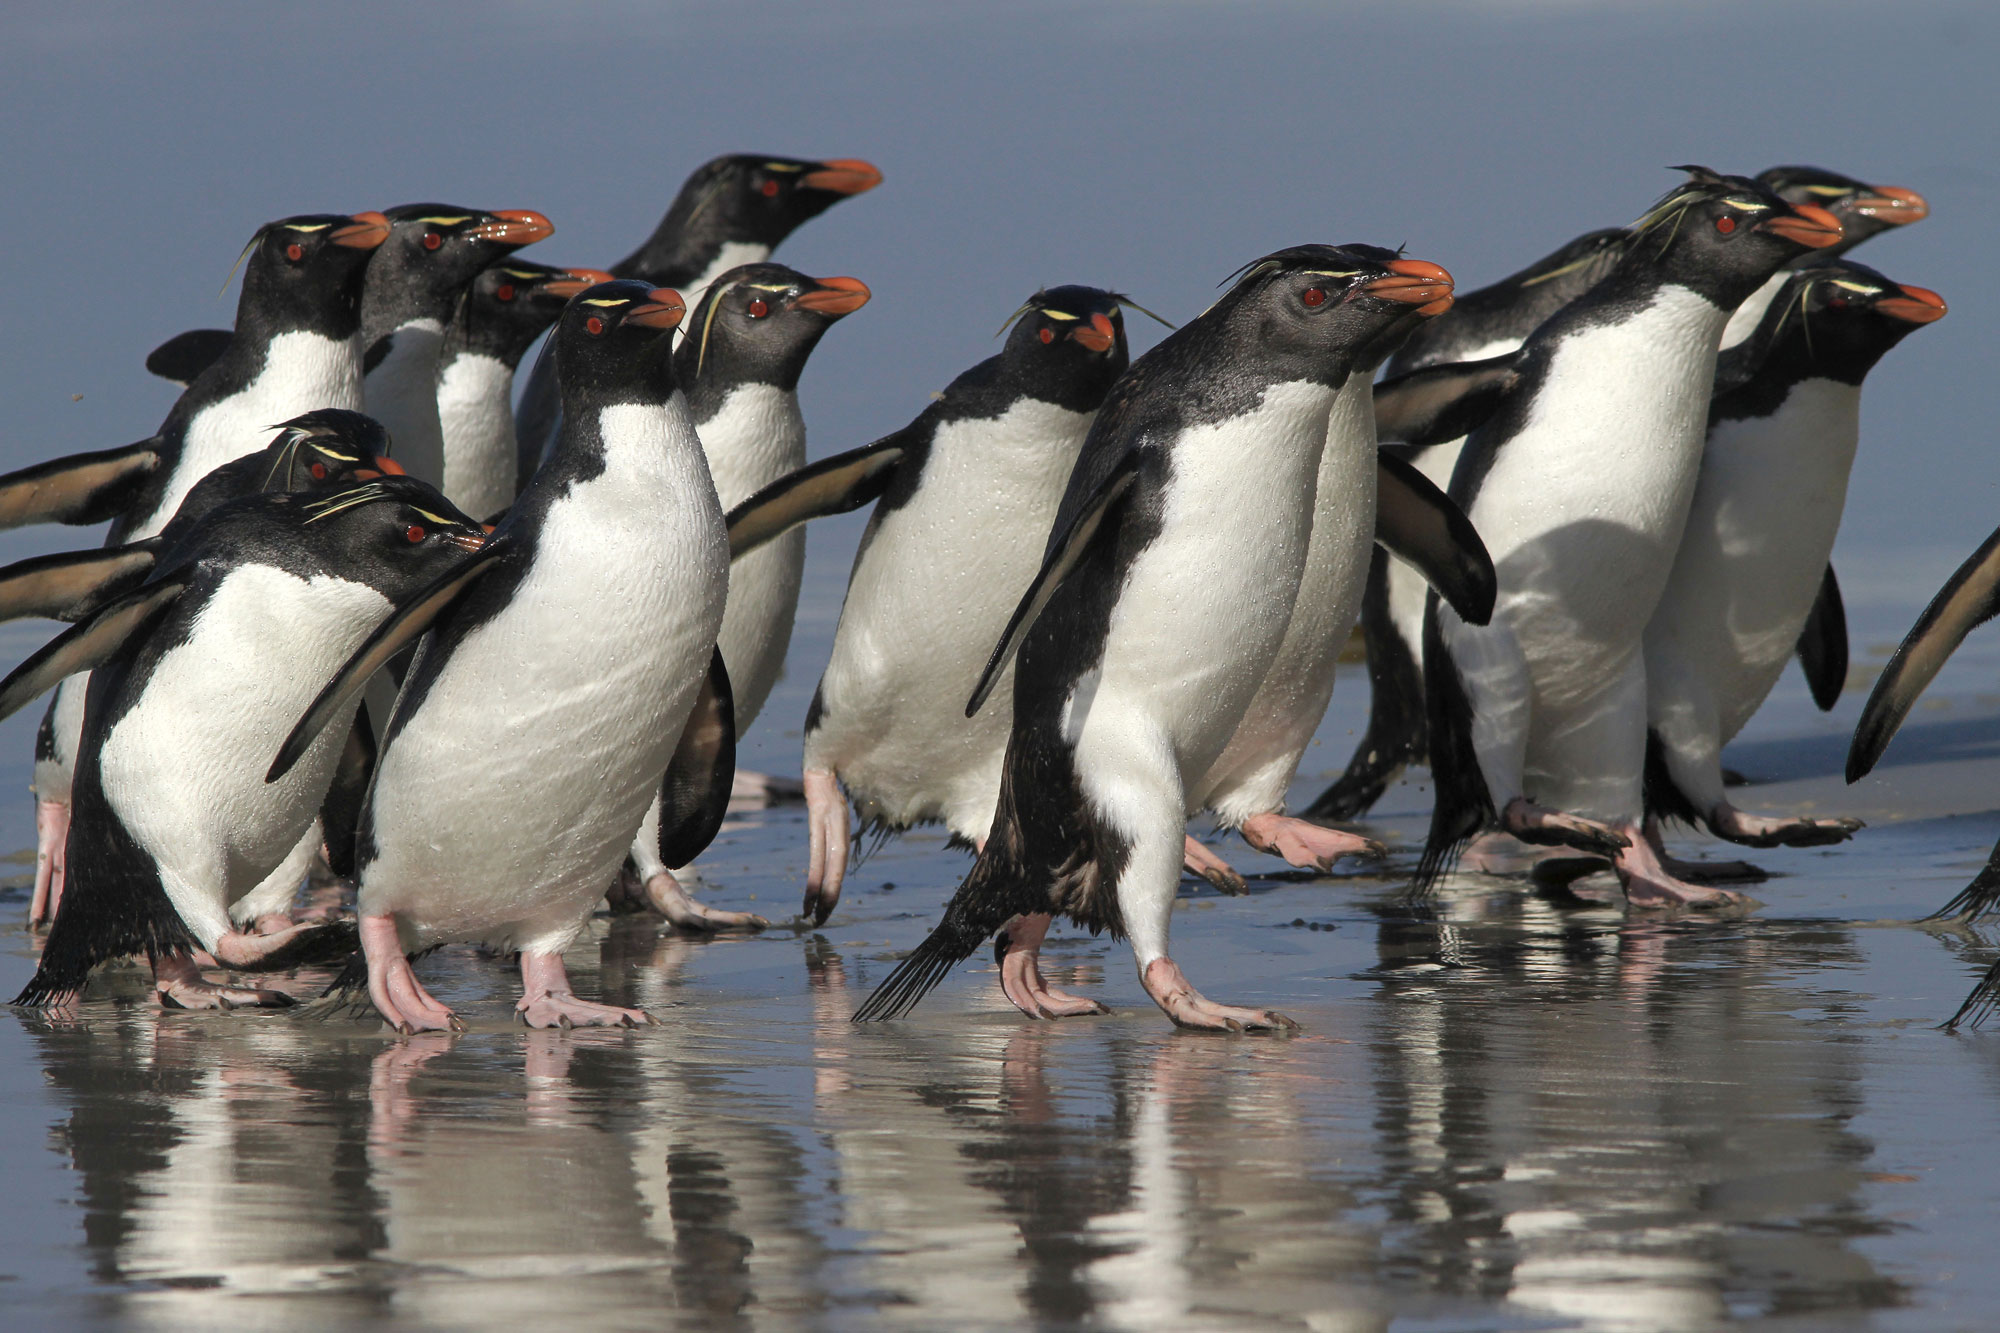 Southern Rockhopper penguins walk the beach in the Falkland Islands (Islas Malvinas), an early destination on the South Georgia to Cape Verde expedition. Photo: Noah Strycker